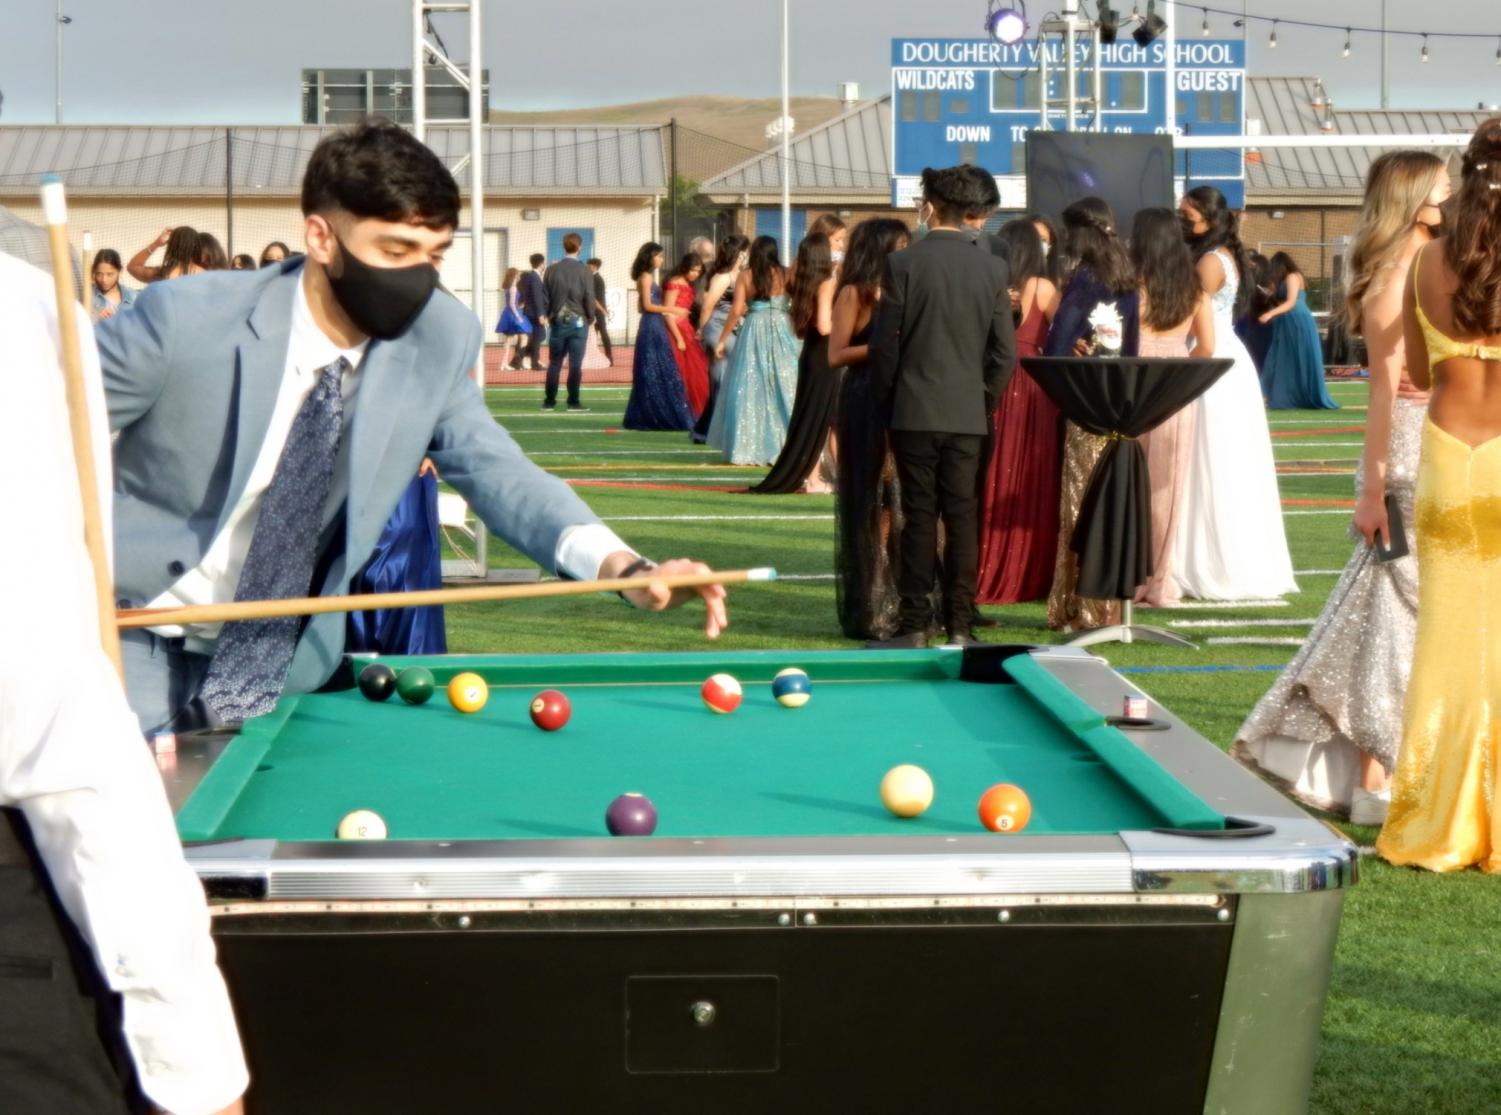 DVHS+senior+class+officers+host+prom+amidst+setbacks+by+the+COVID-19+pandemic